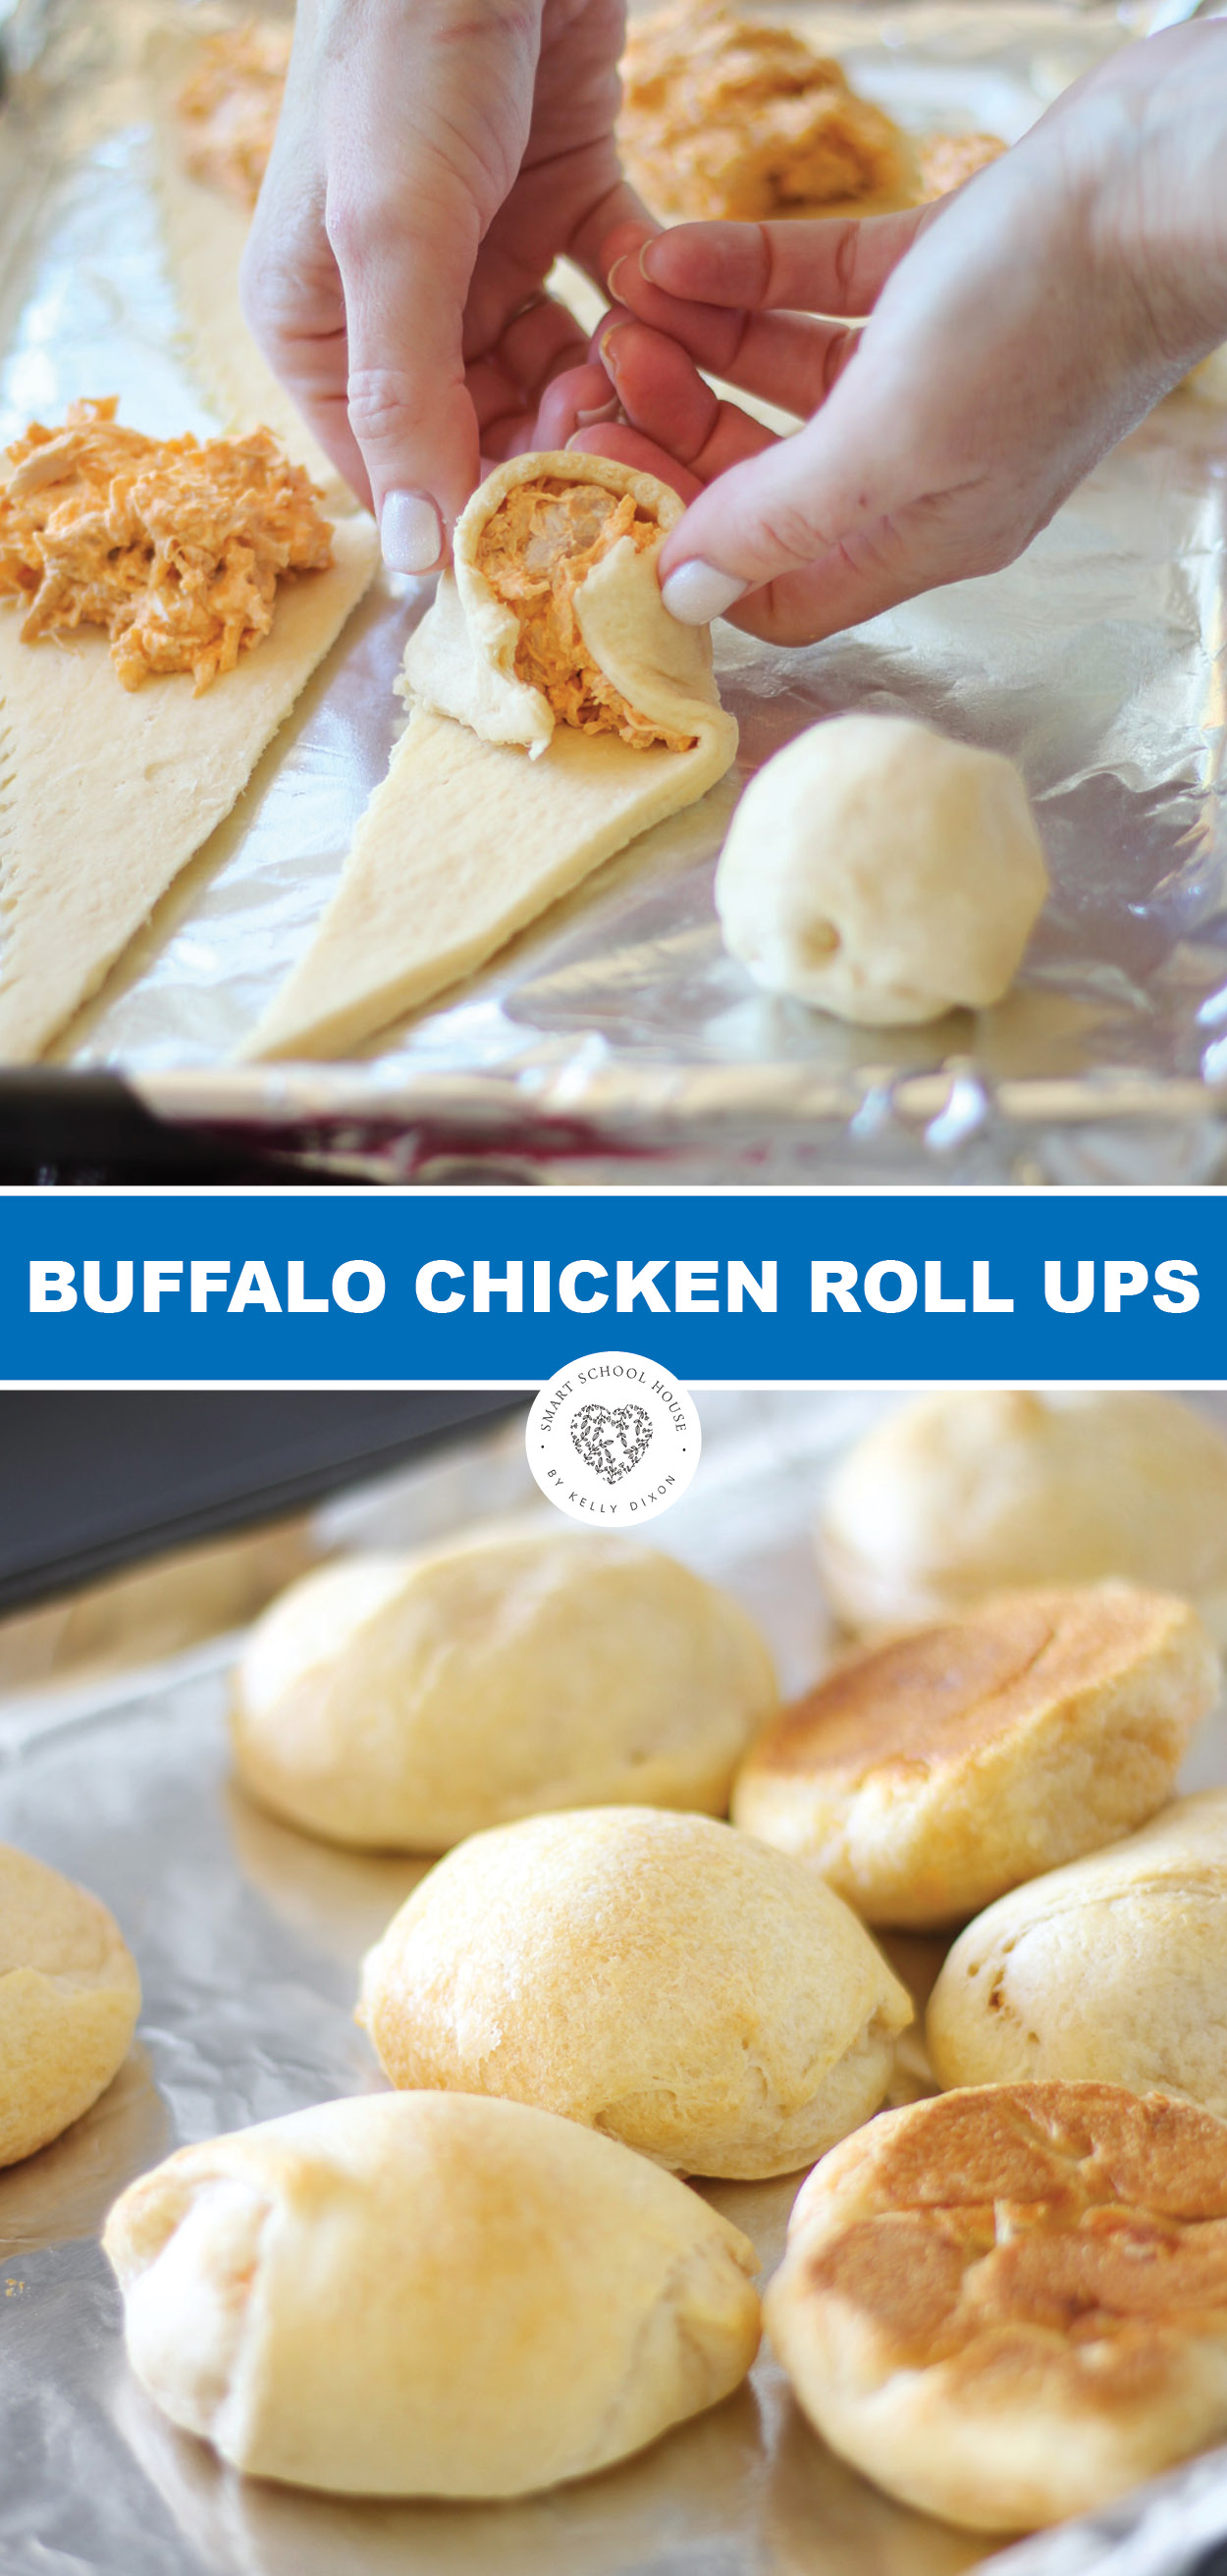 Try these delicious Buffalo chicken roll up appetizer with a crescent twist! These could be the ultimate appetizer for game day or your next party! #buffalochicken #appetizer #superbowl #buffalochickenrecipe #chicken #crescentrolls #smartschoolhouse